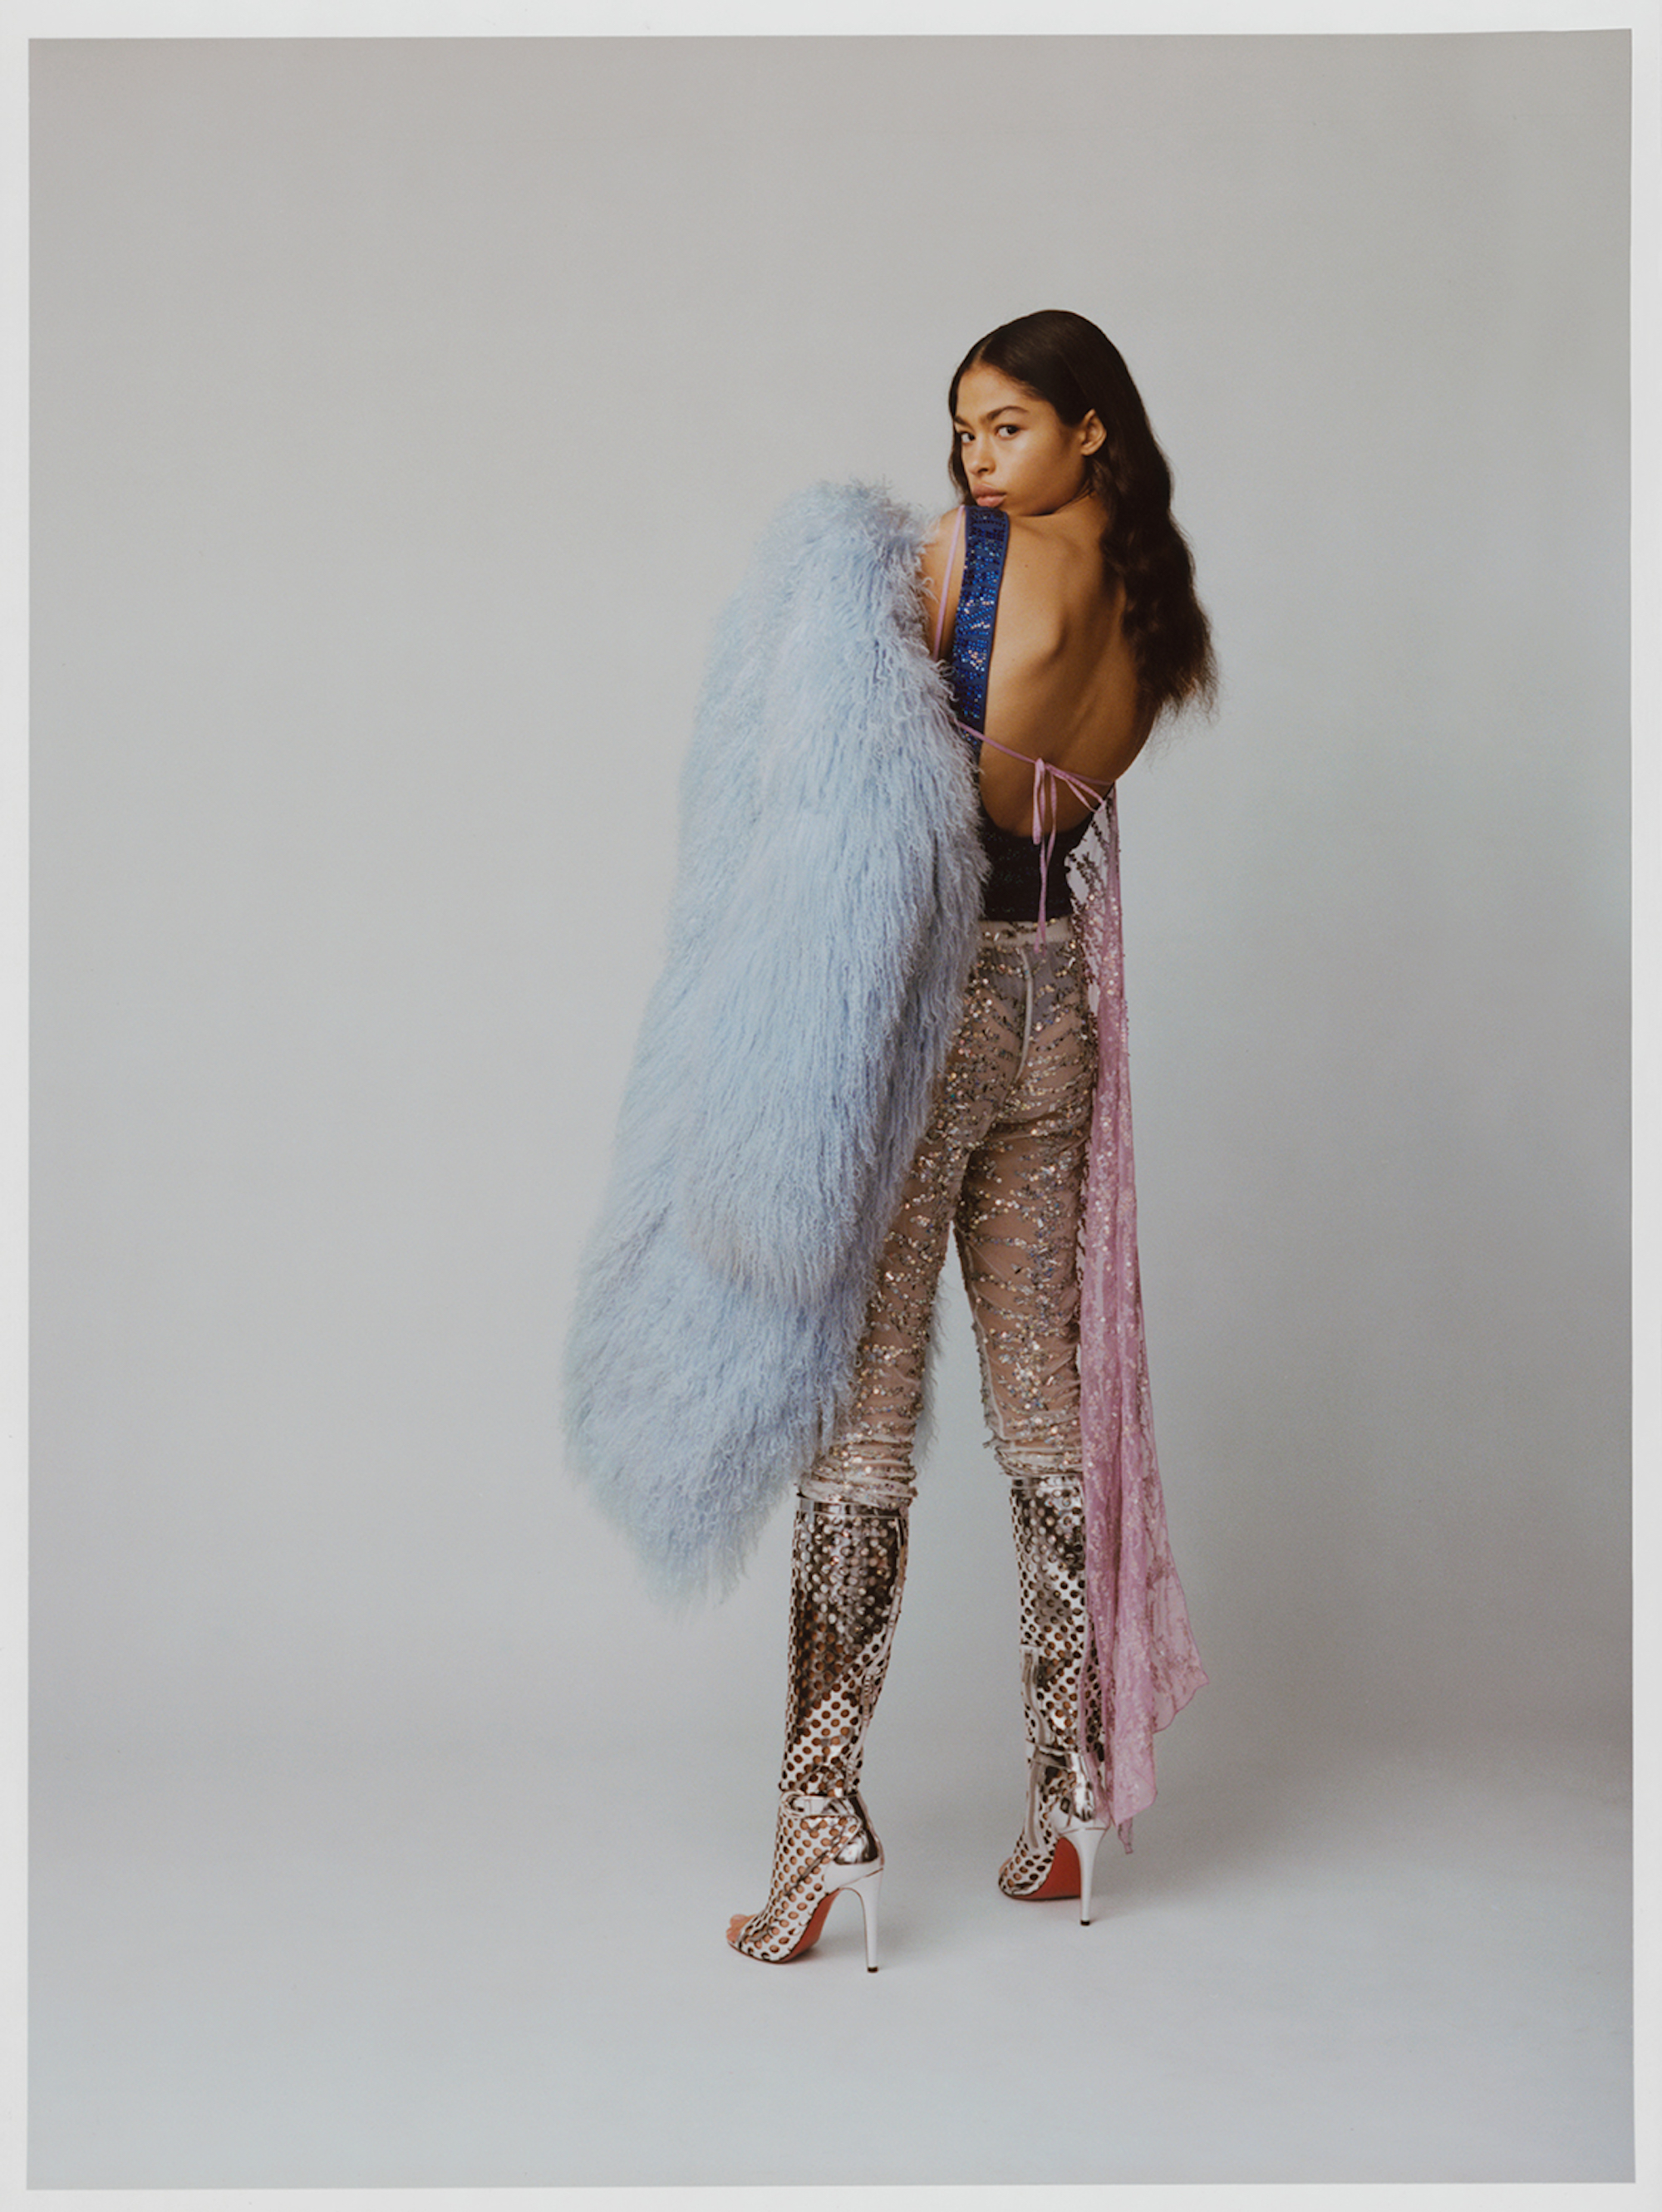 Astral angel fashion editorial sequin trousers